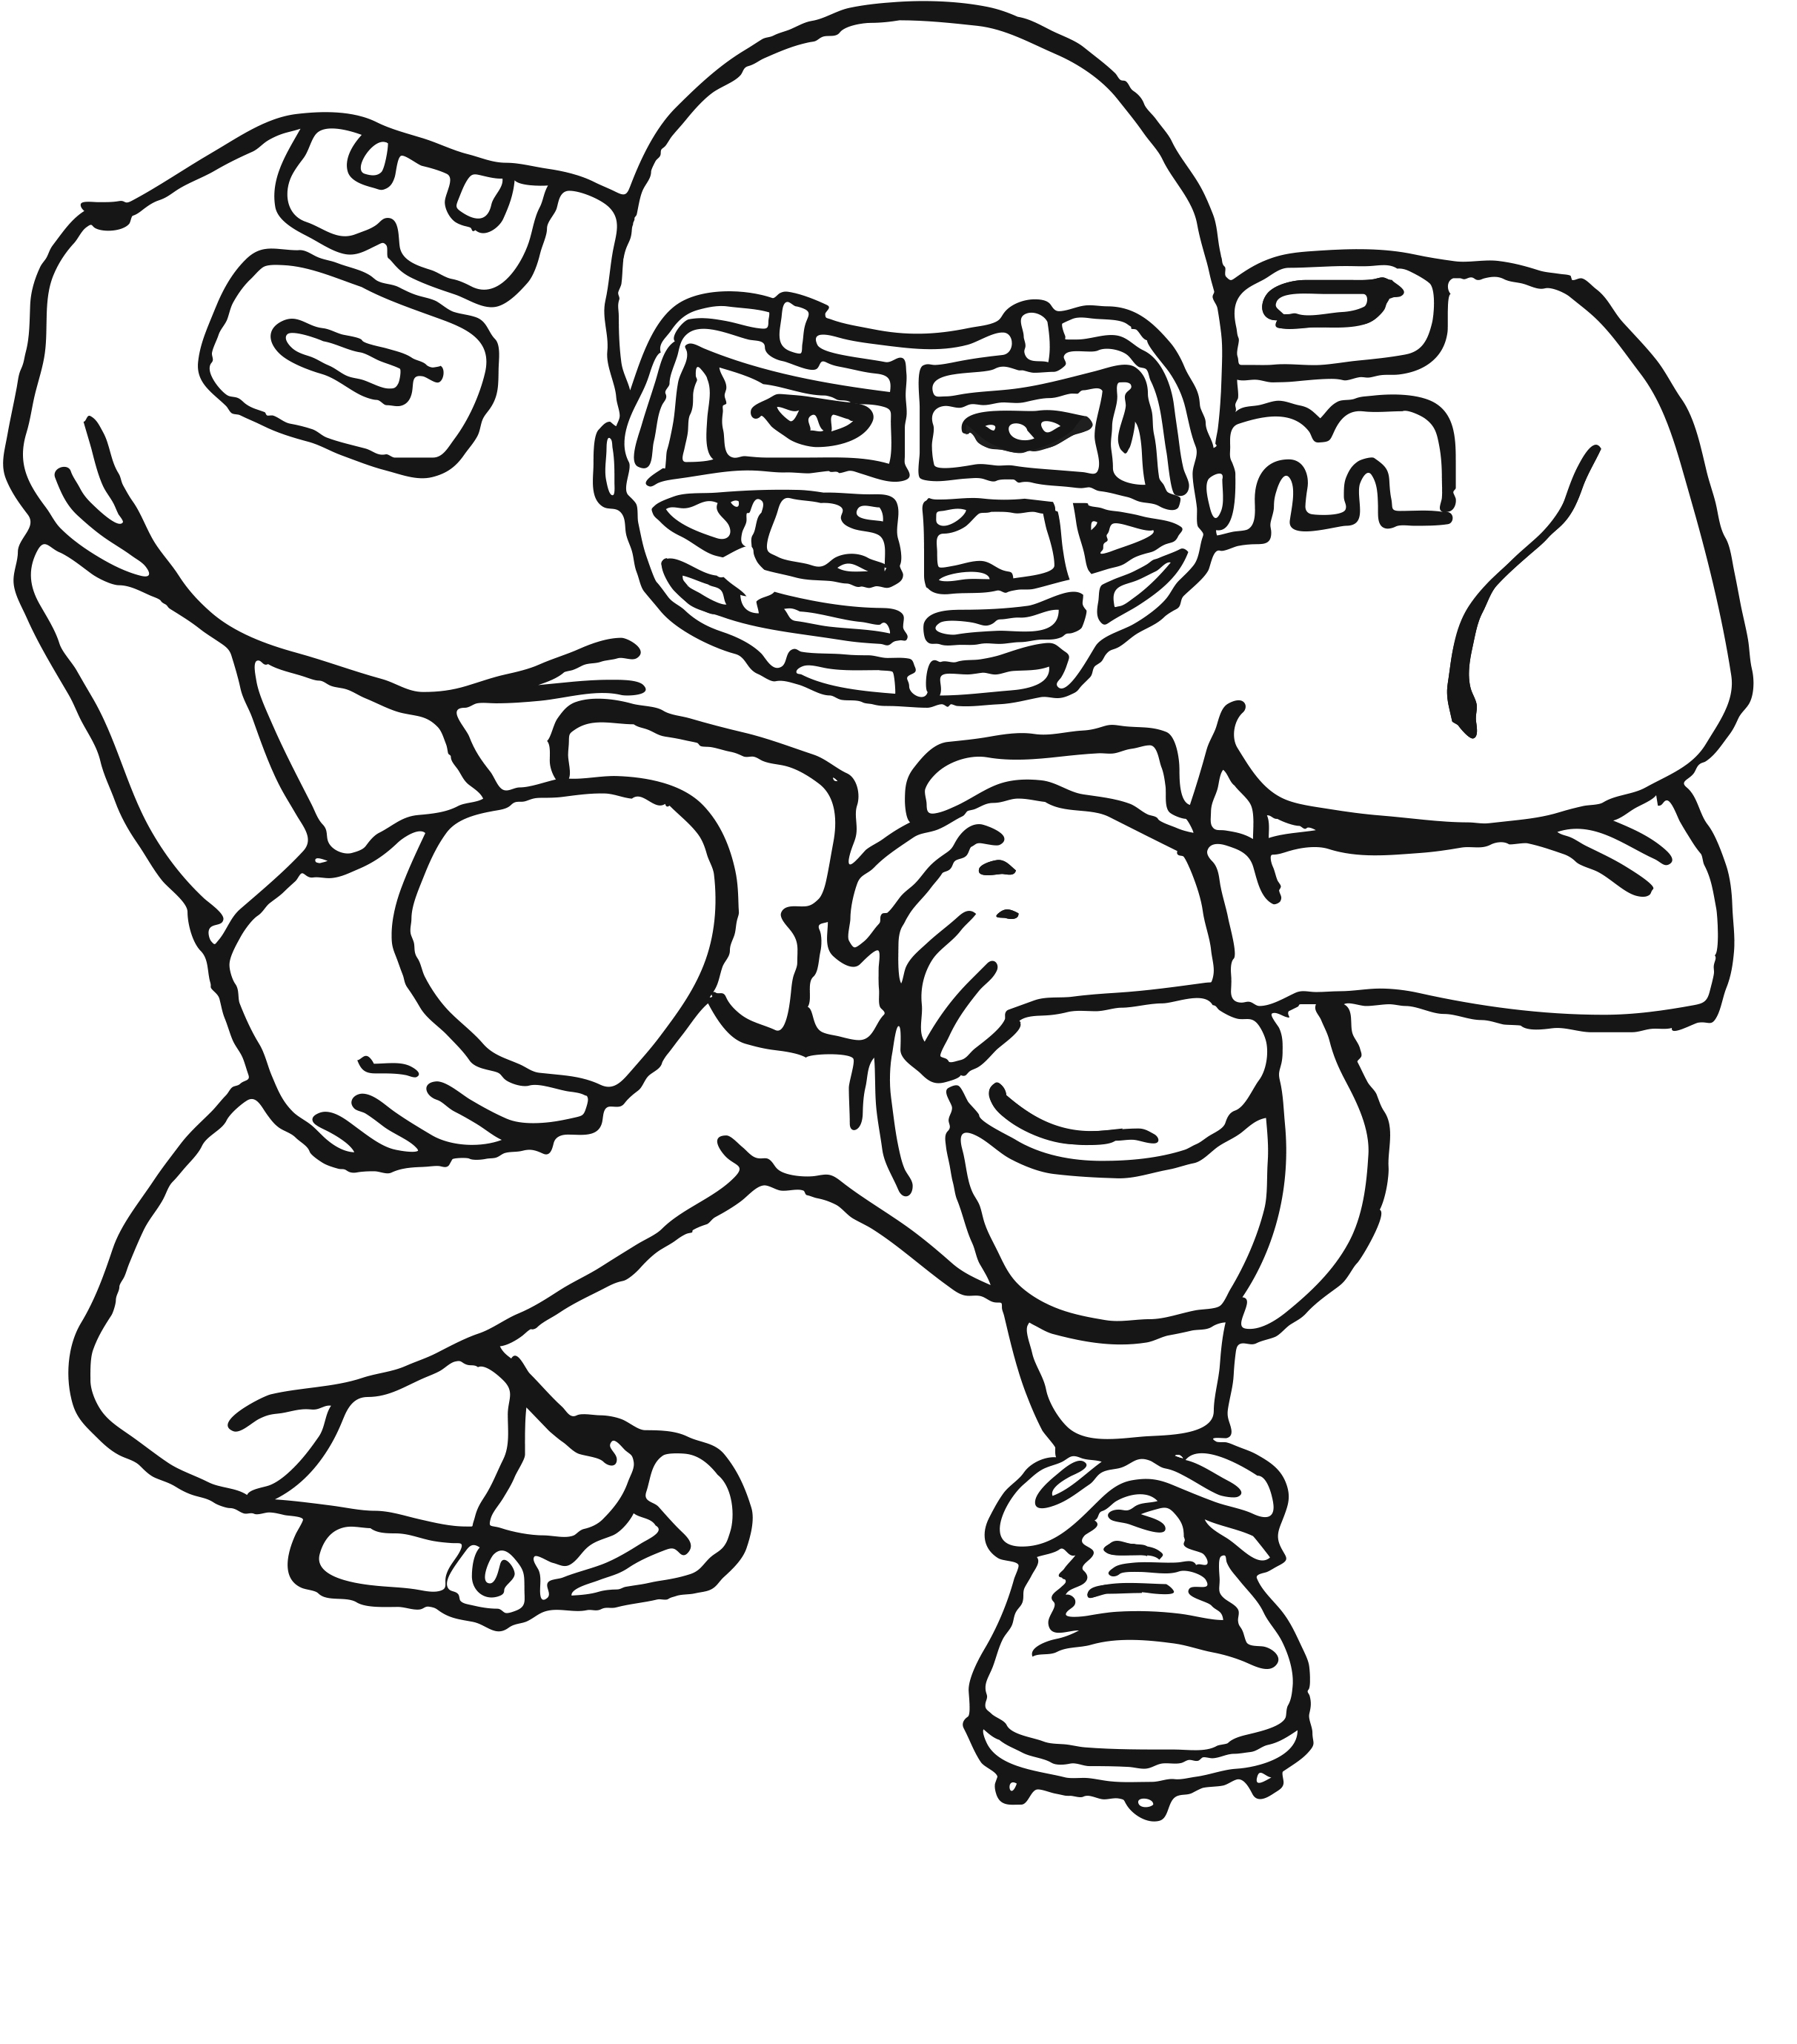 football pictures to colour and print 35 free printable football or soccer coloring pages football to and colour pictures print